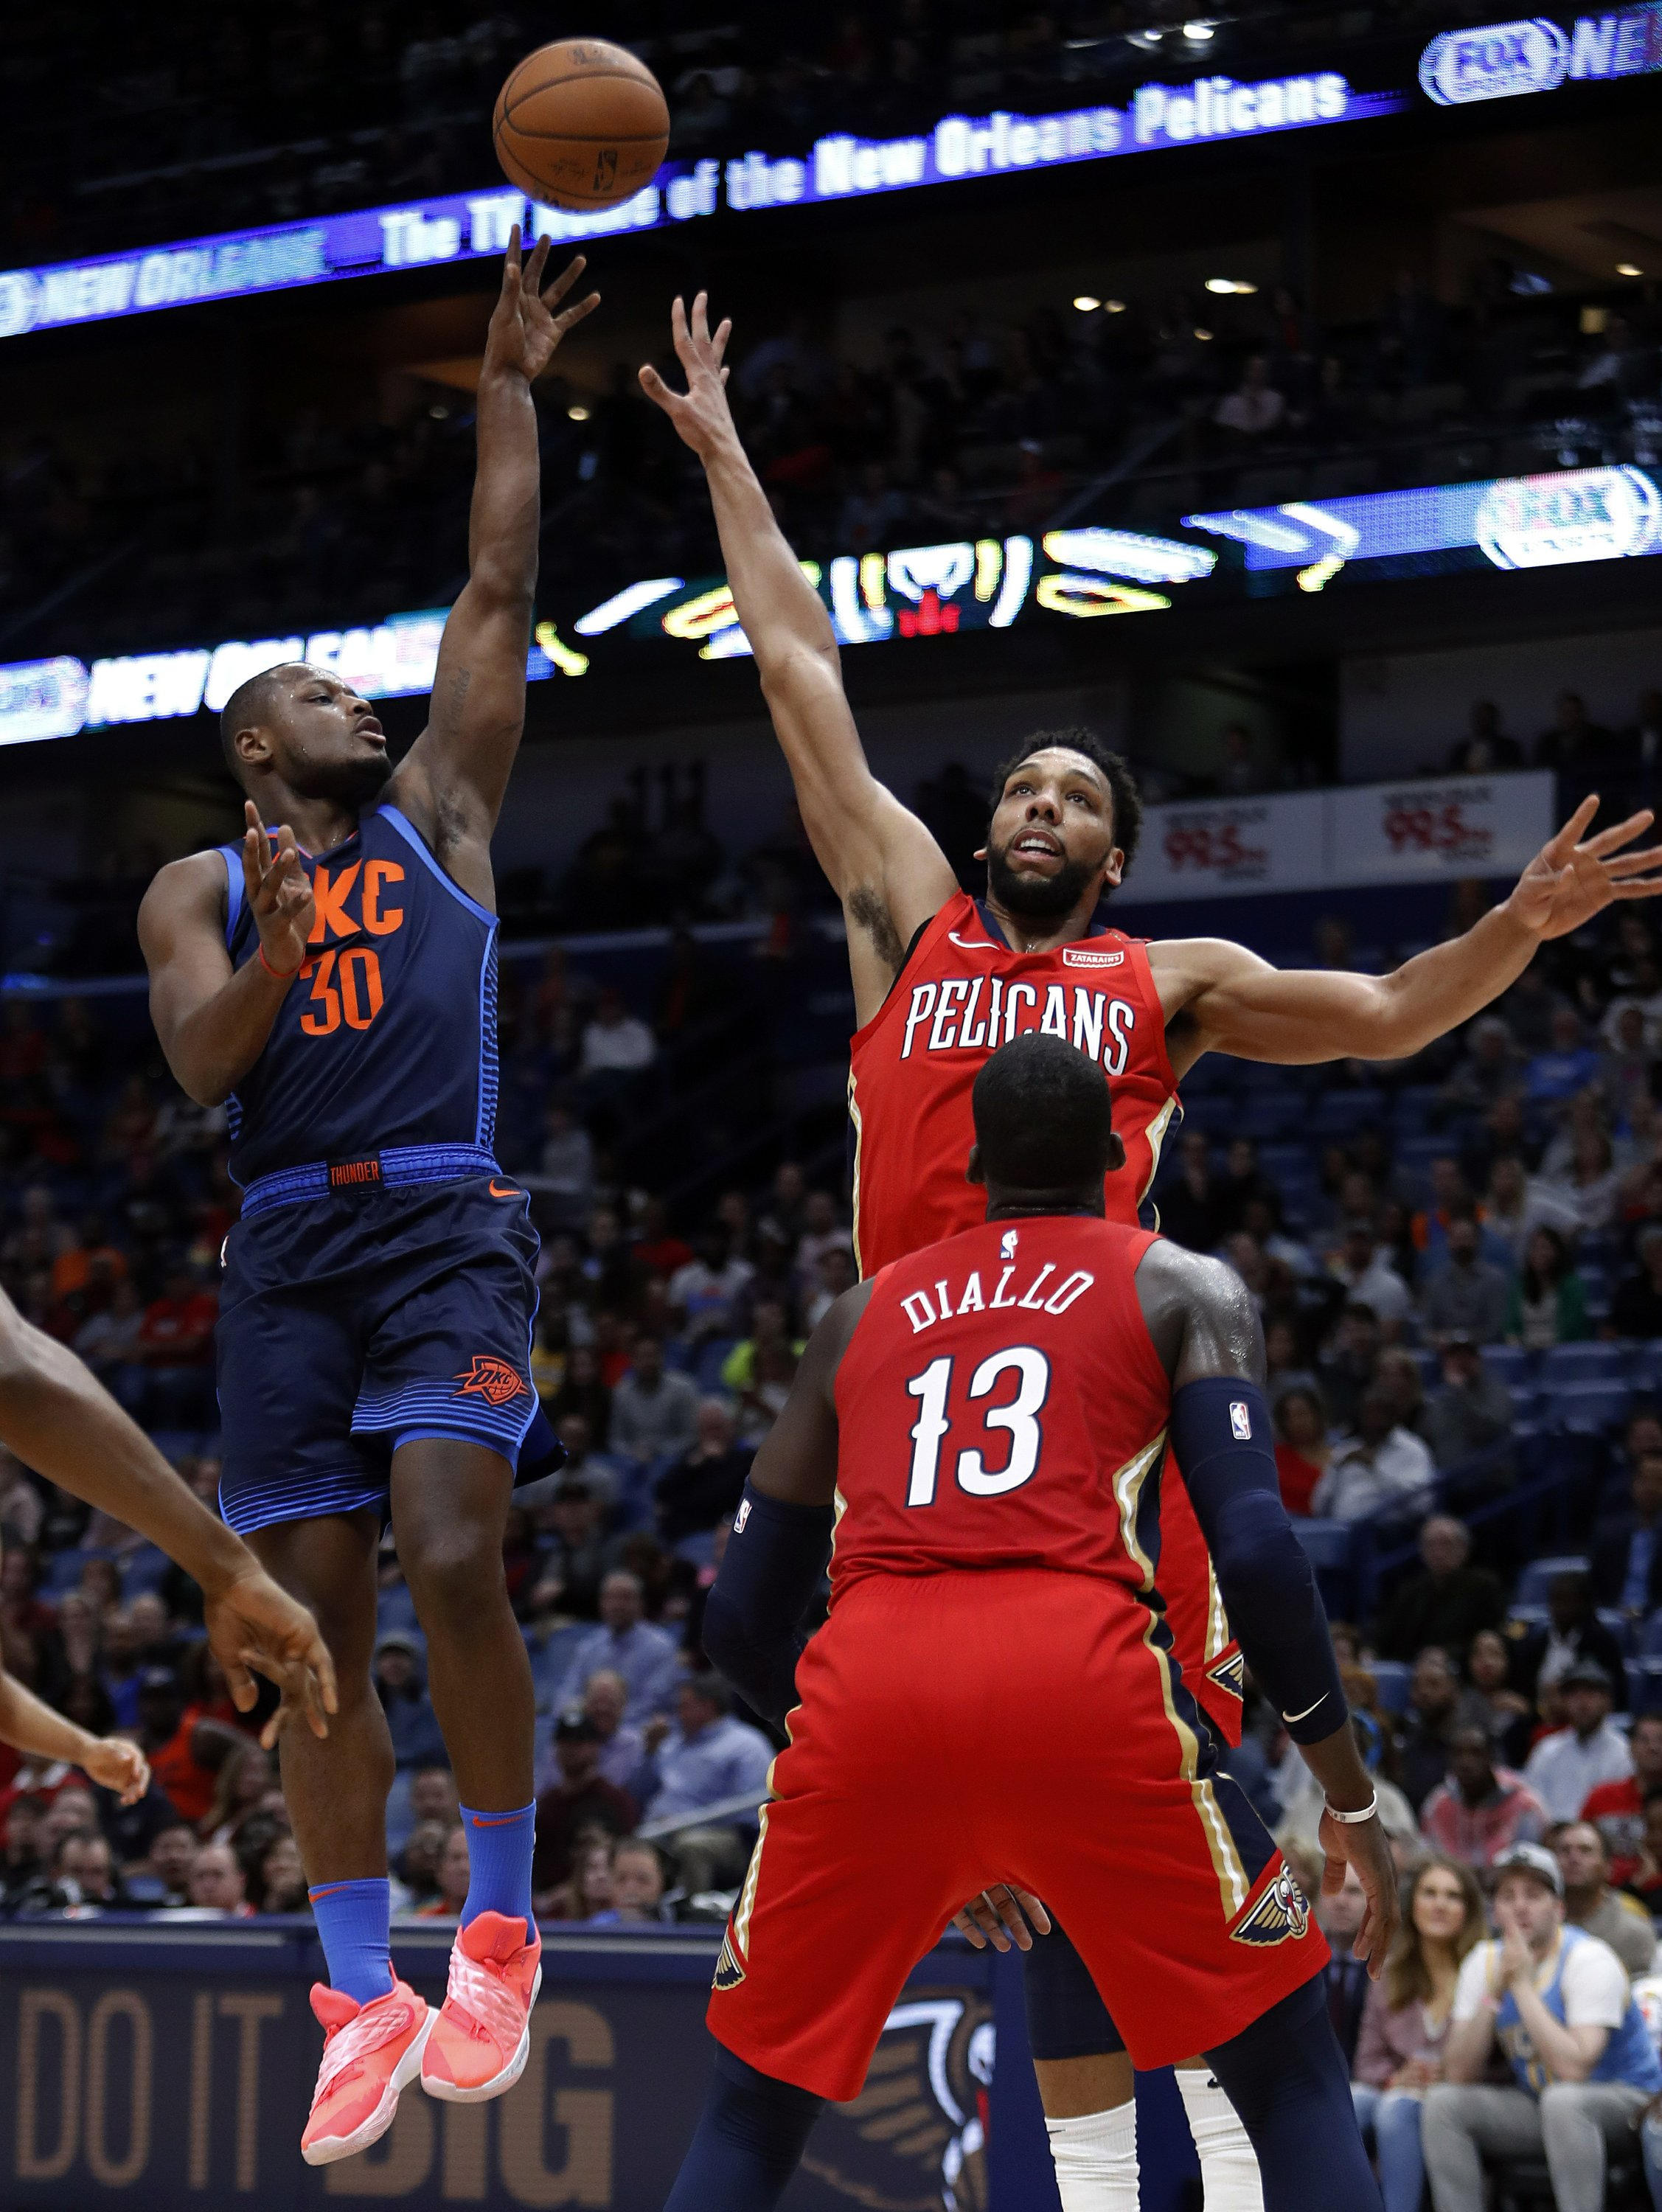 Davis Leaves With Shoulder Injury Pelicans Beat Thunder